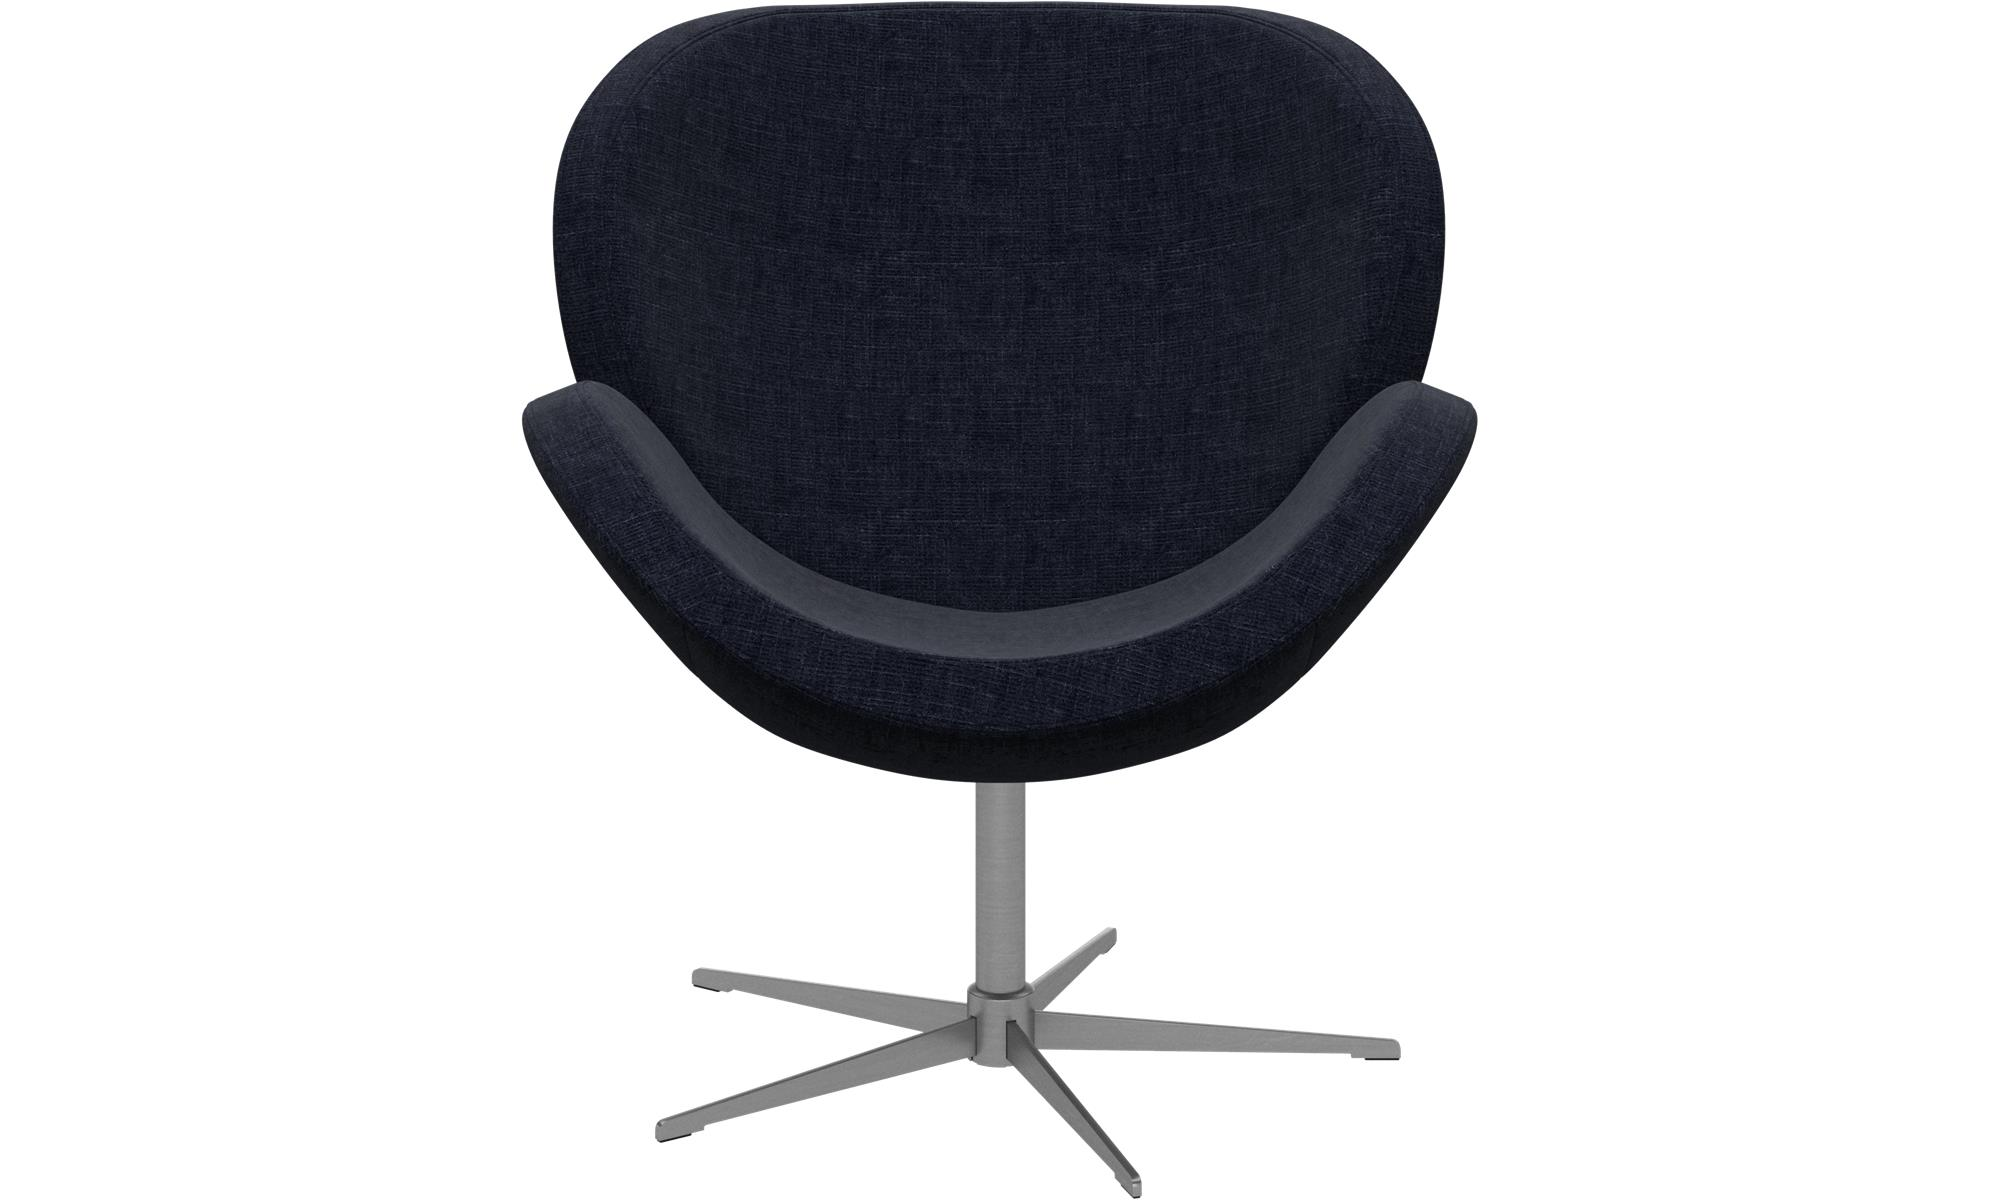 swivel chair price philippines red leather and ottoman navy blue napoli schelly with function